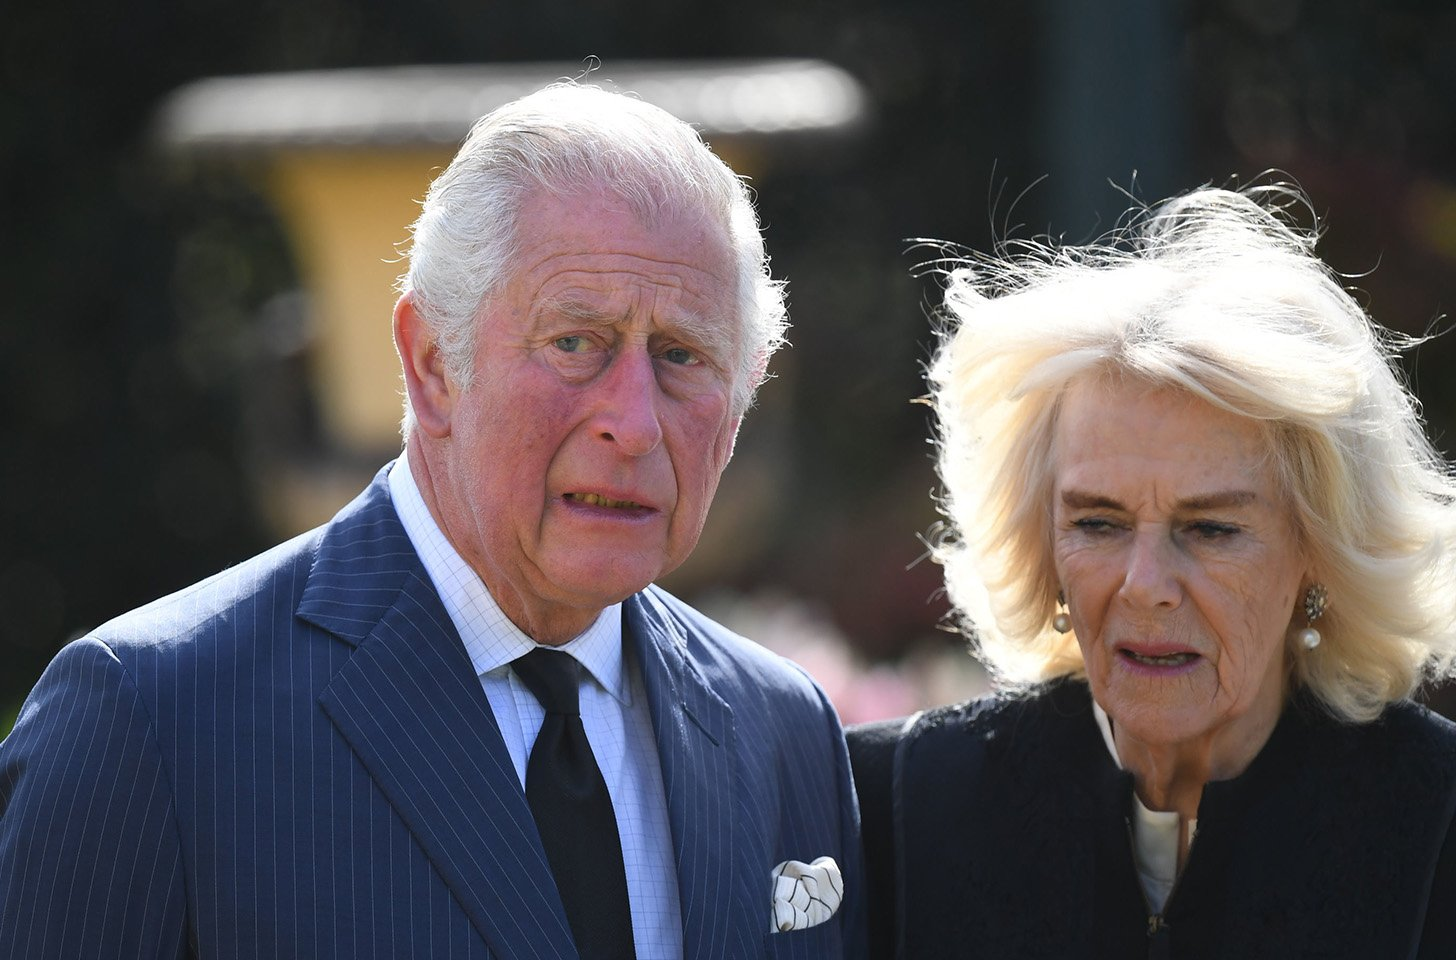 Prince Charles, Camilla Parker Bowles' 'Secret' Australian Son Posts 'Incredible' Proof They Are His Real Parents